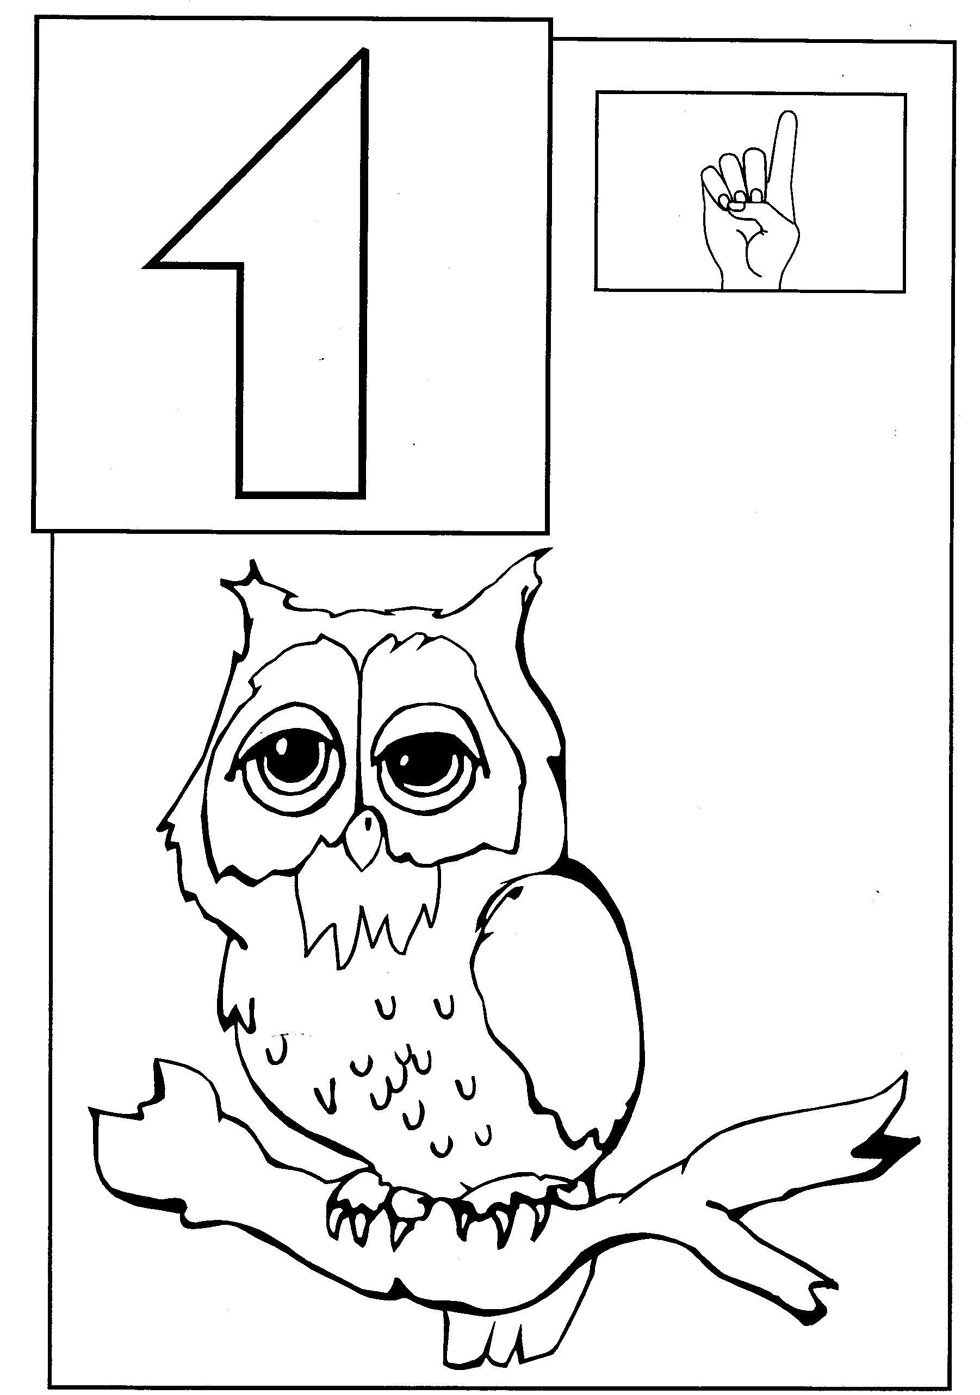 Toddler coloring images - Owl Coloring Page